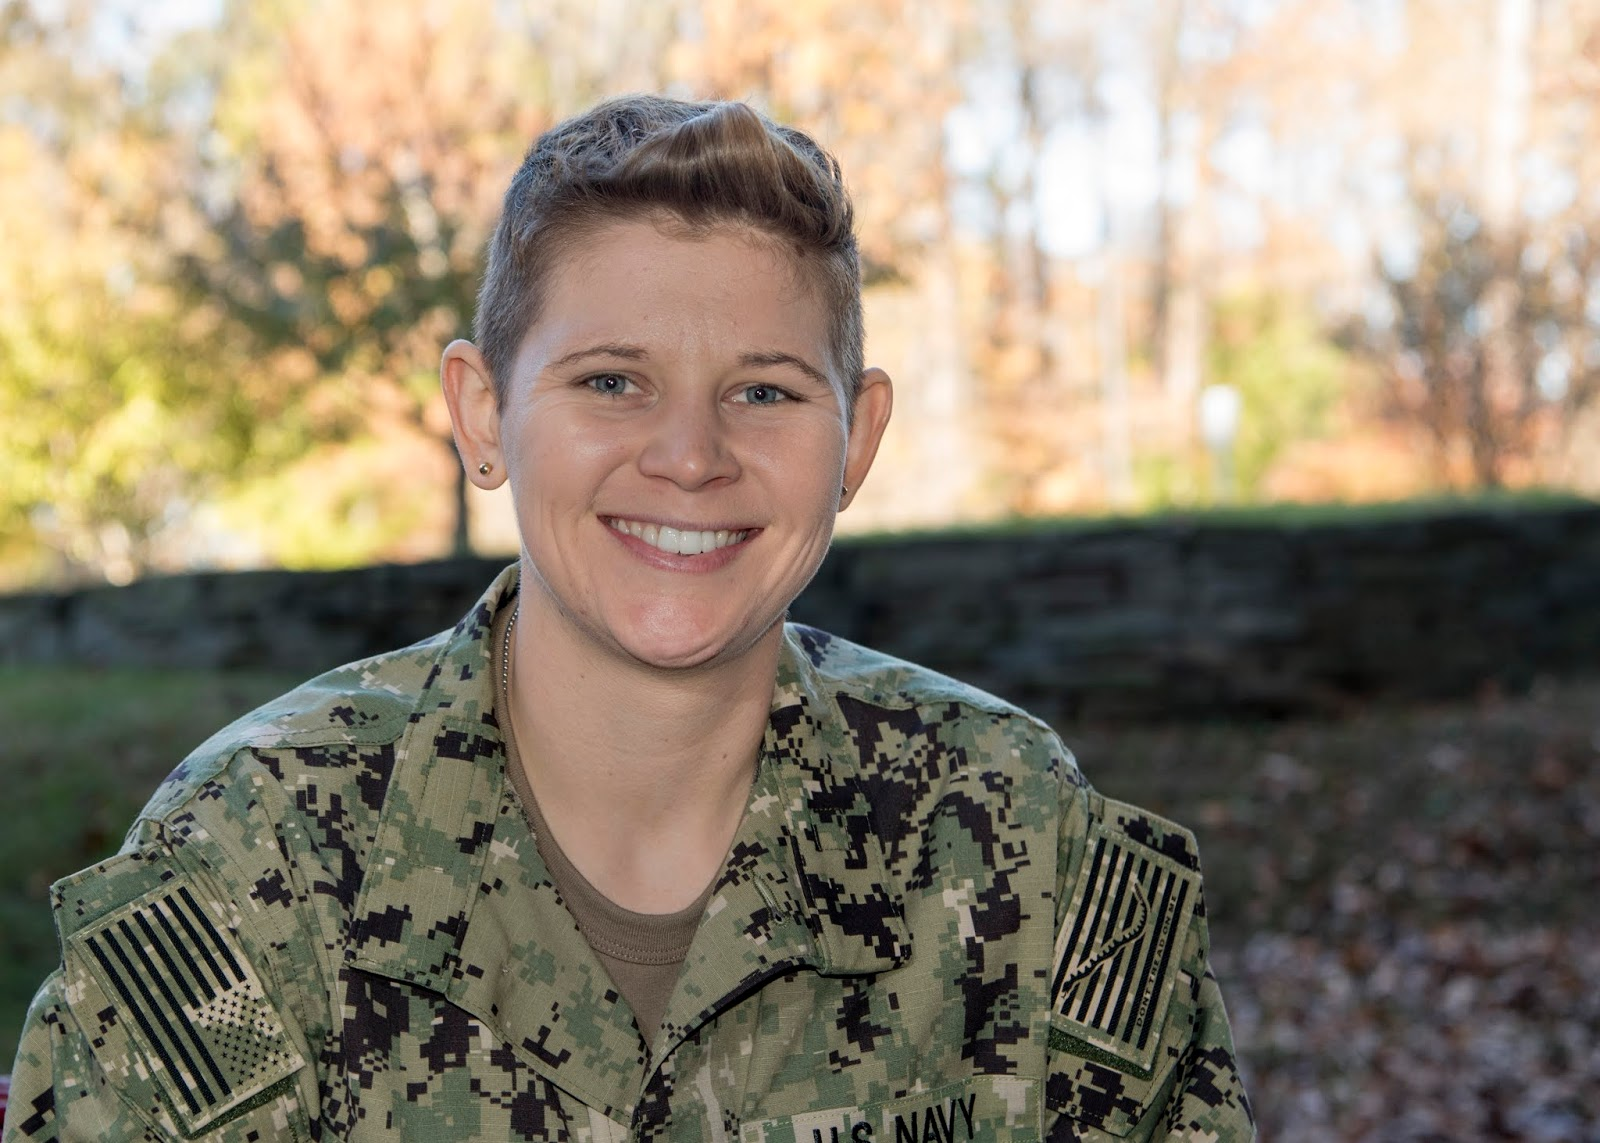 A female in a U.S. Navy uniform poses for a photo outside in front of the woods.